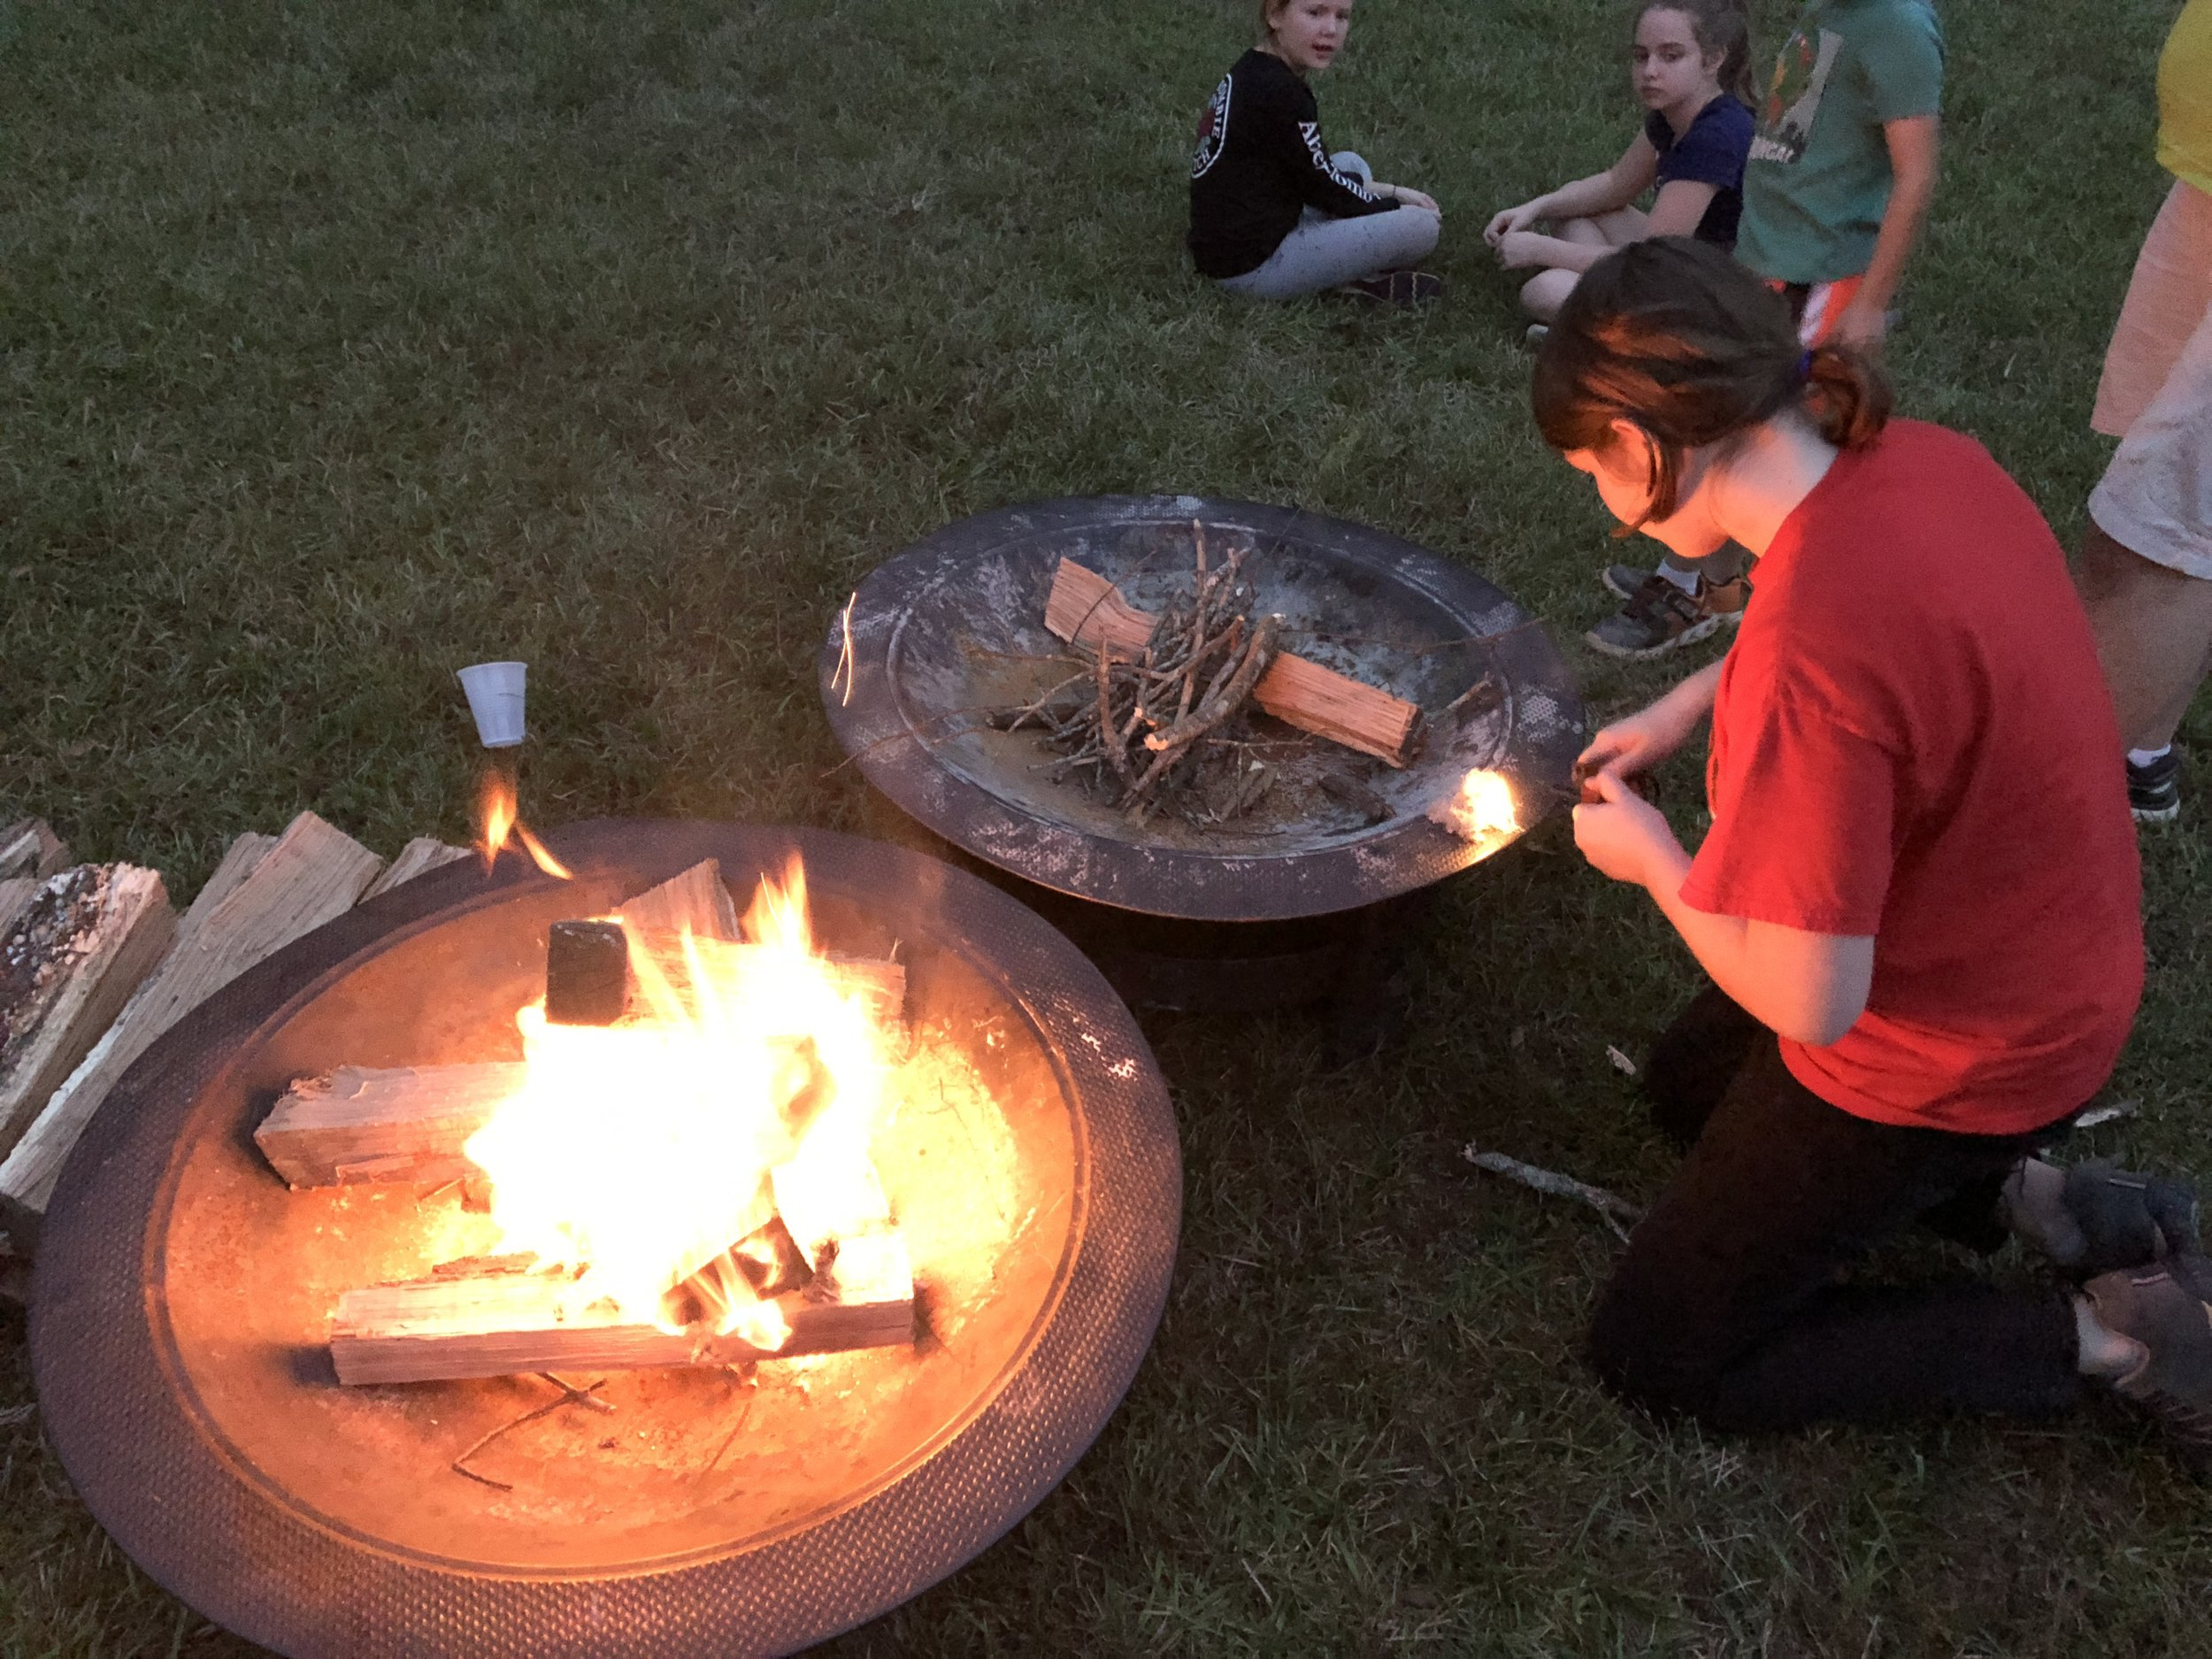 A Scouts BSA scout demonstrating how to start a fire